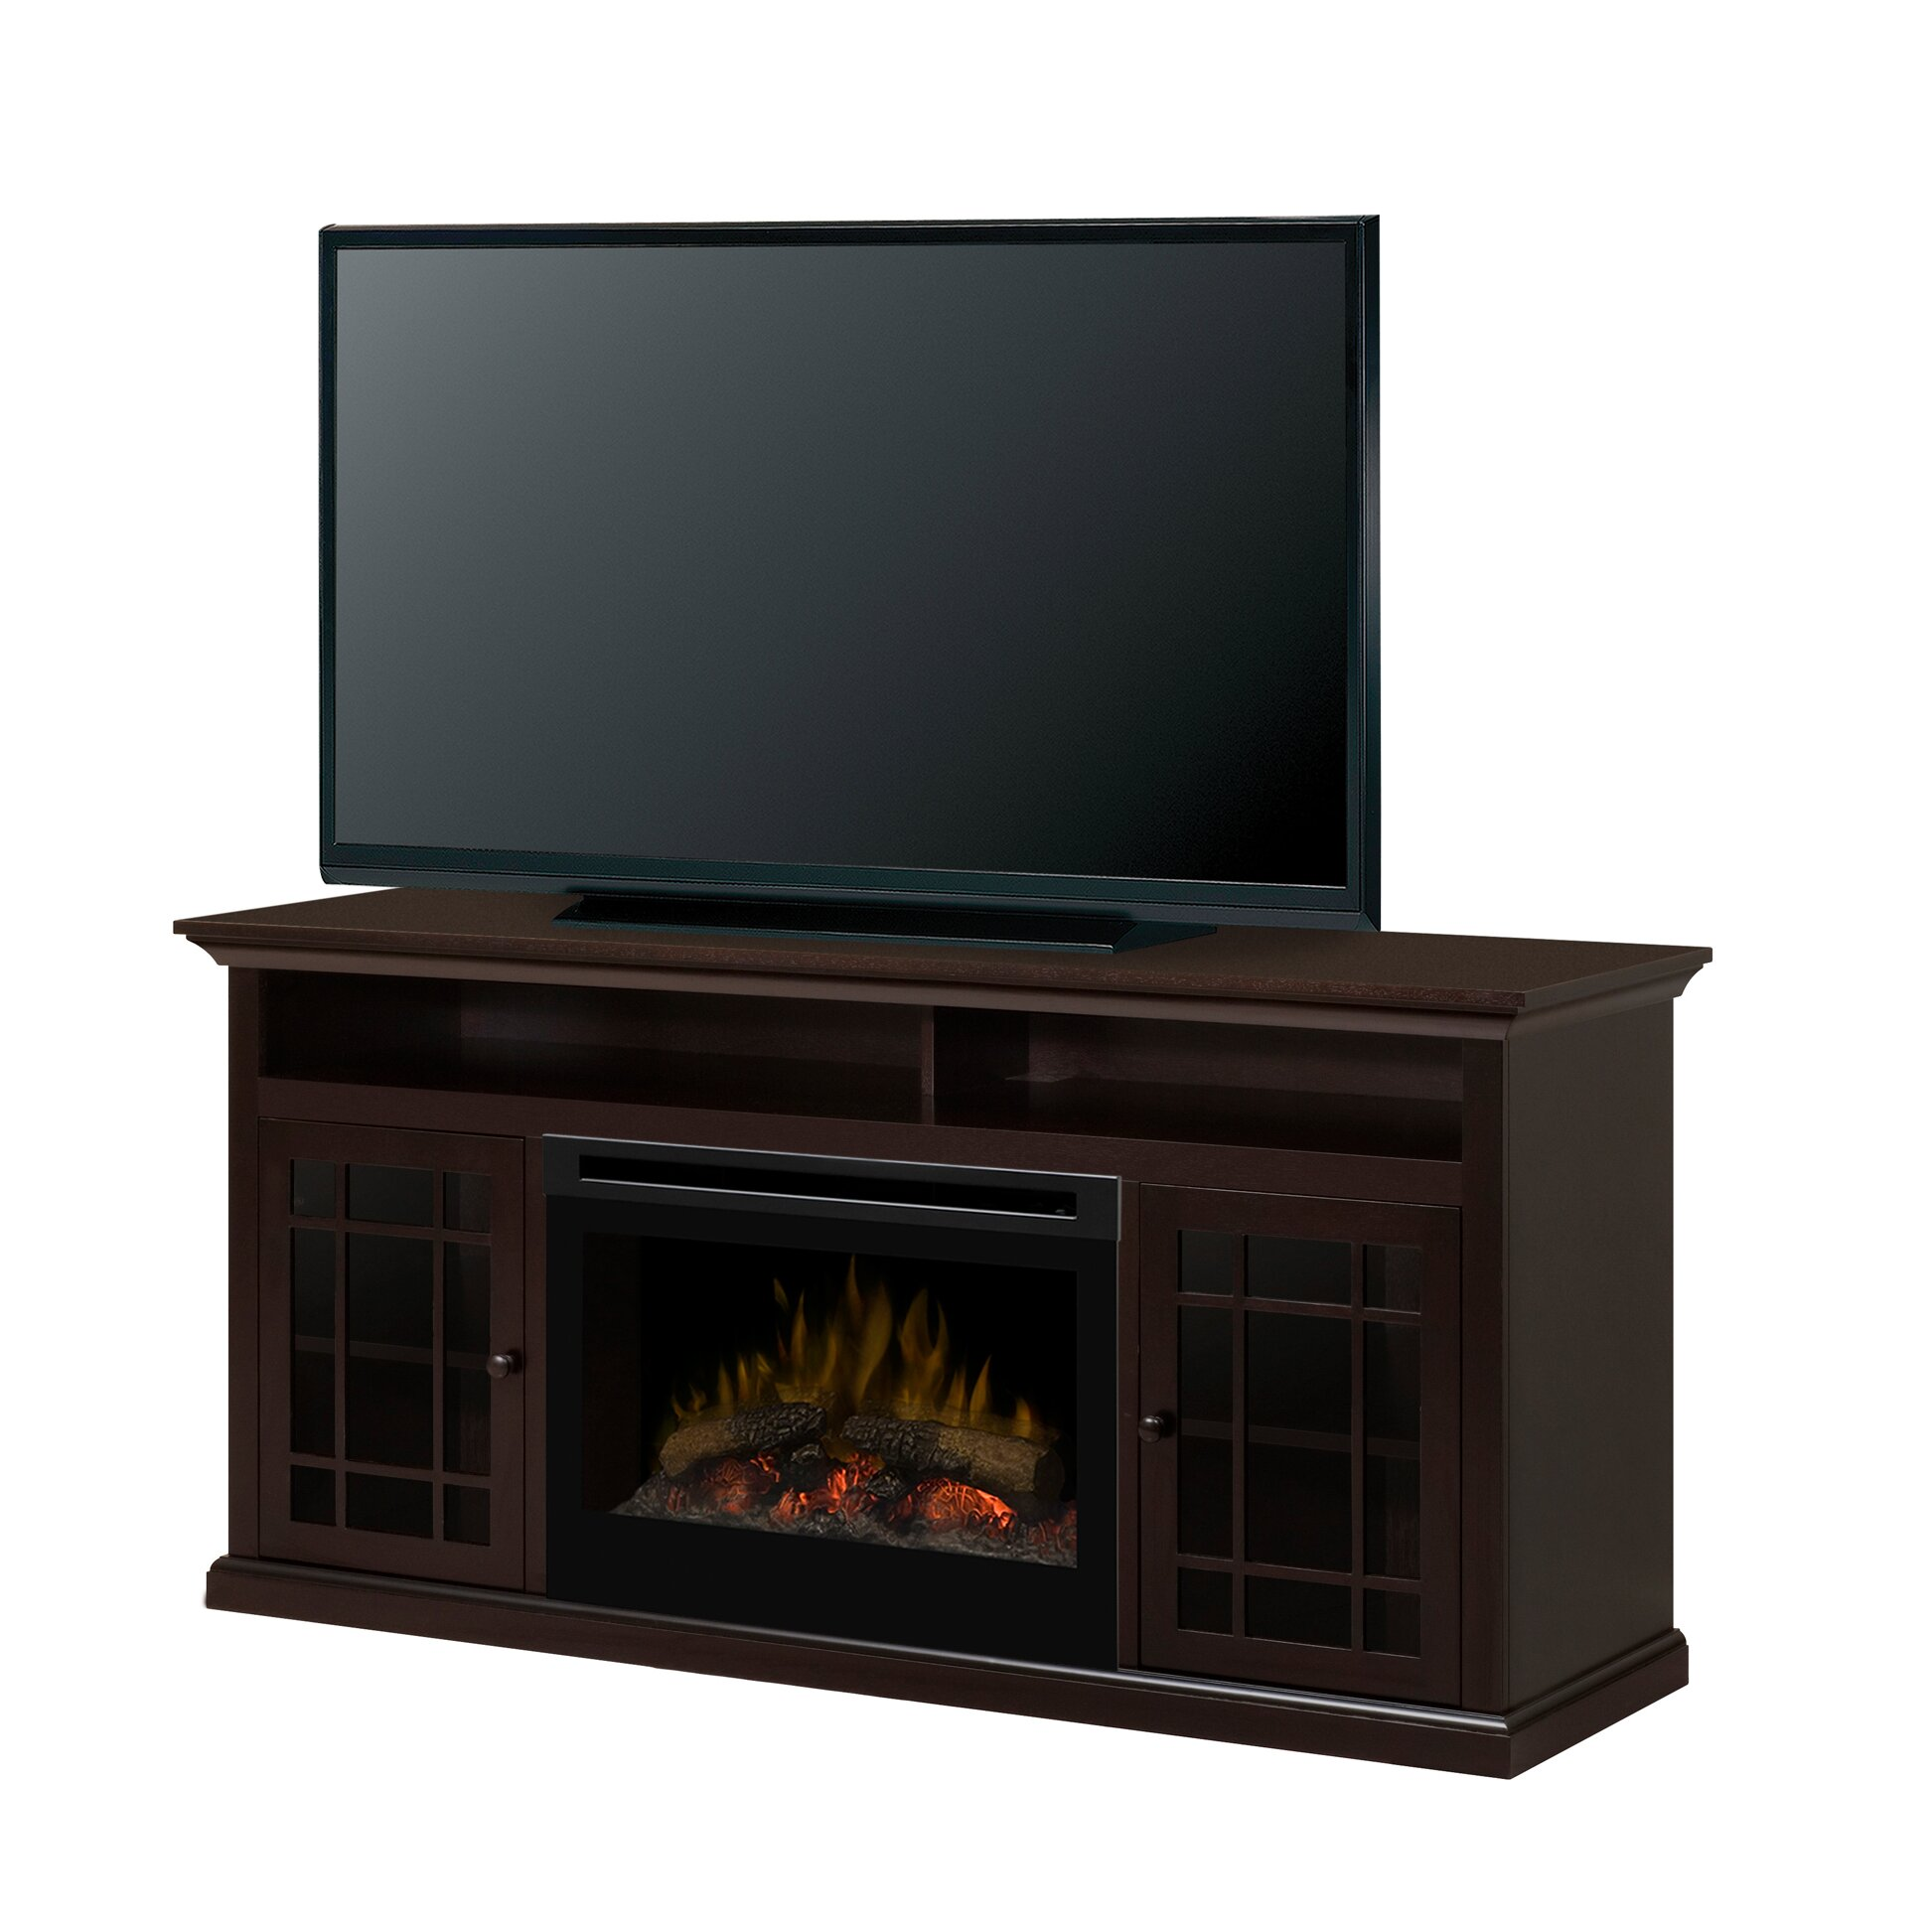 Dimplex Hazelwood Media Console Electric Fireplace Reviews Wayfair